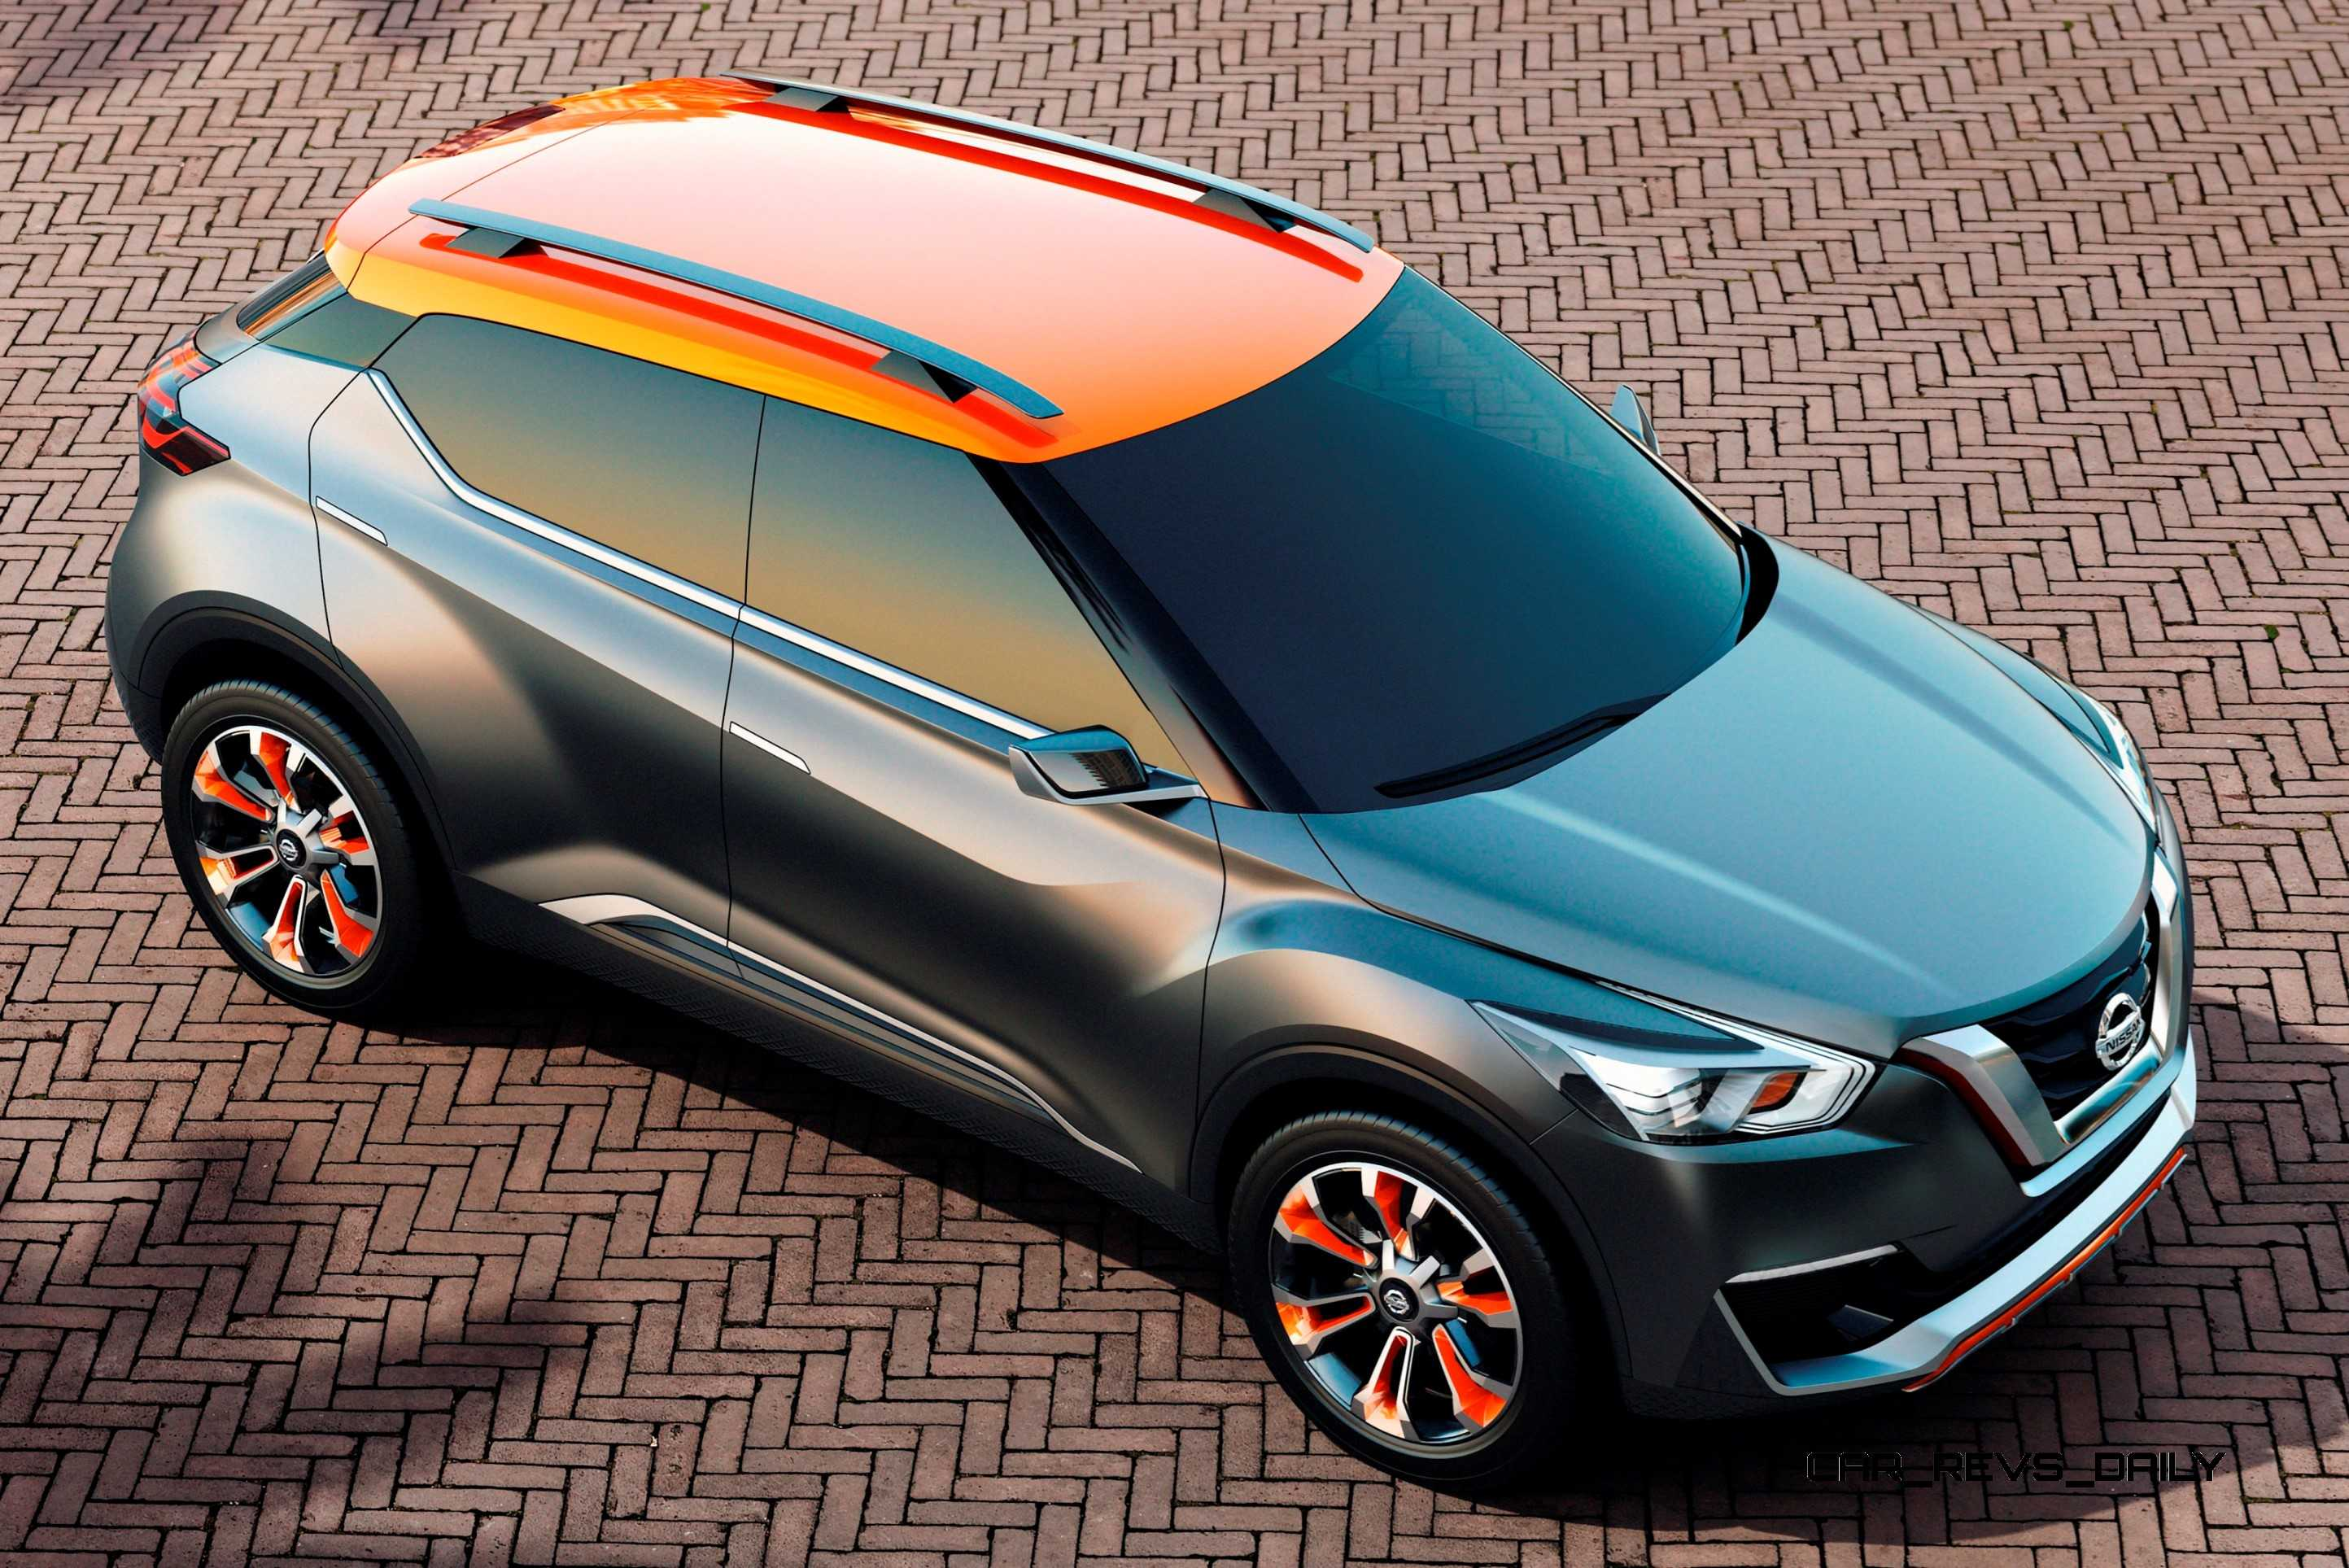 Nissan Rogue Suv >> 2014 Nissan Kicks Concept Is New Sao Paolo Off-Road Crossover